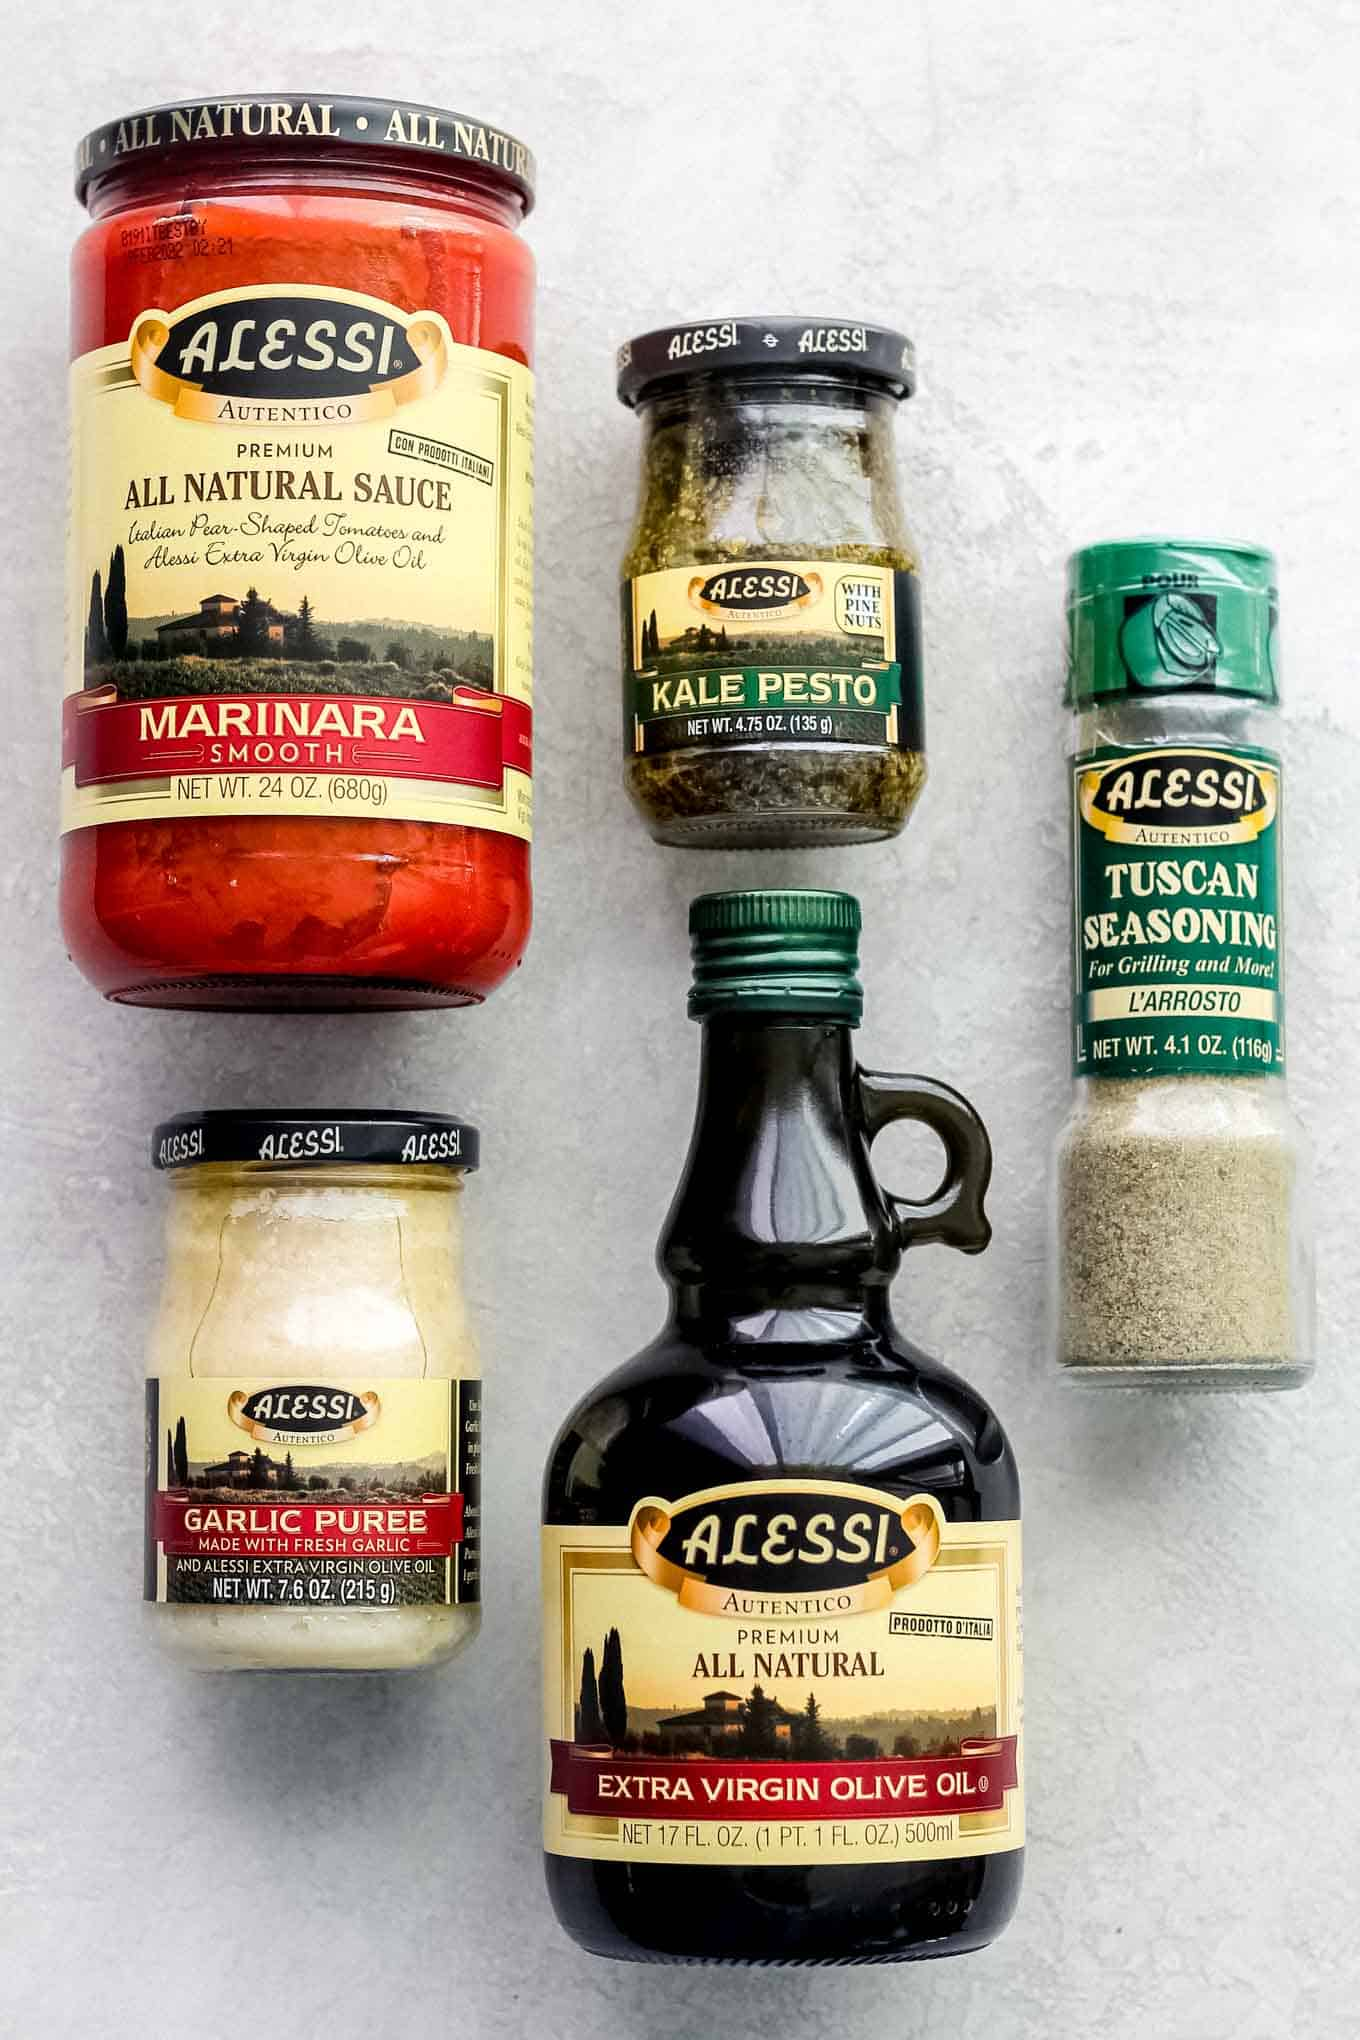 A collection of Alessi products including marinara sauce, kale pesto, Italian seasoning, olive oil, and garlic puree.